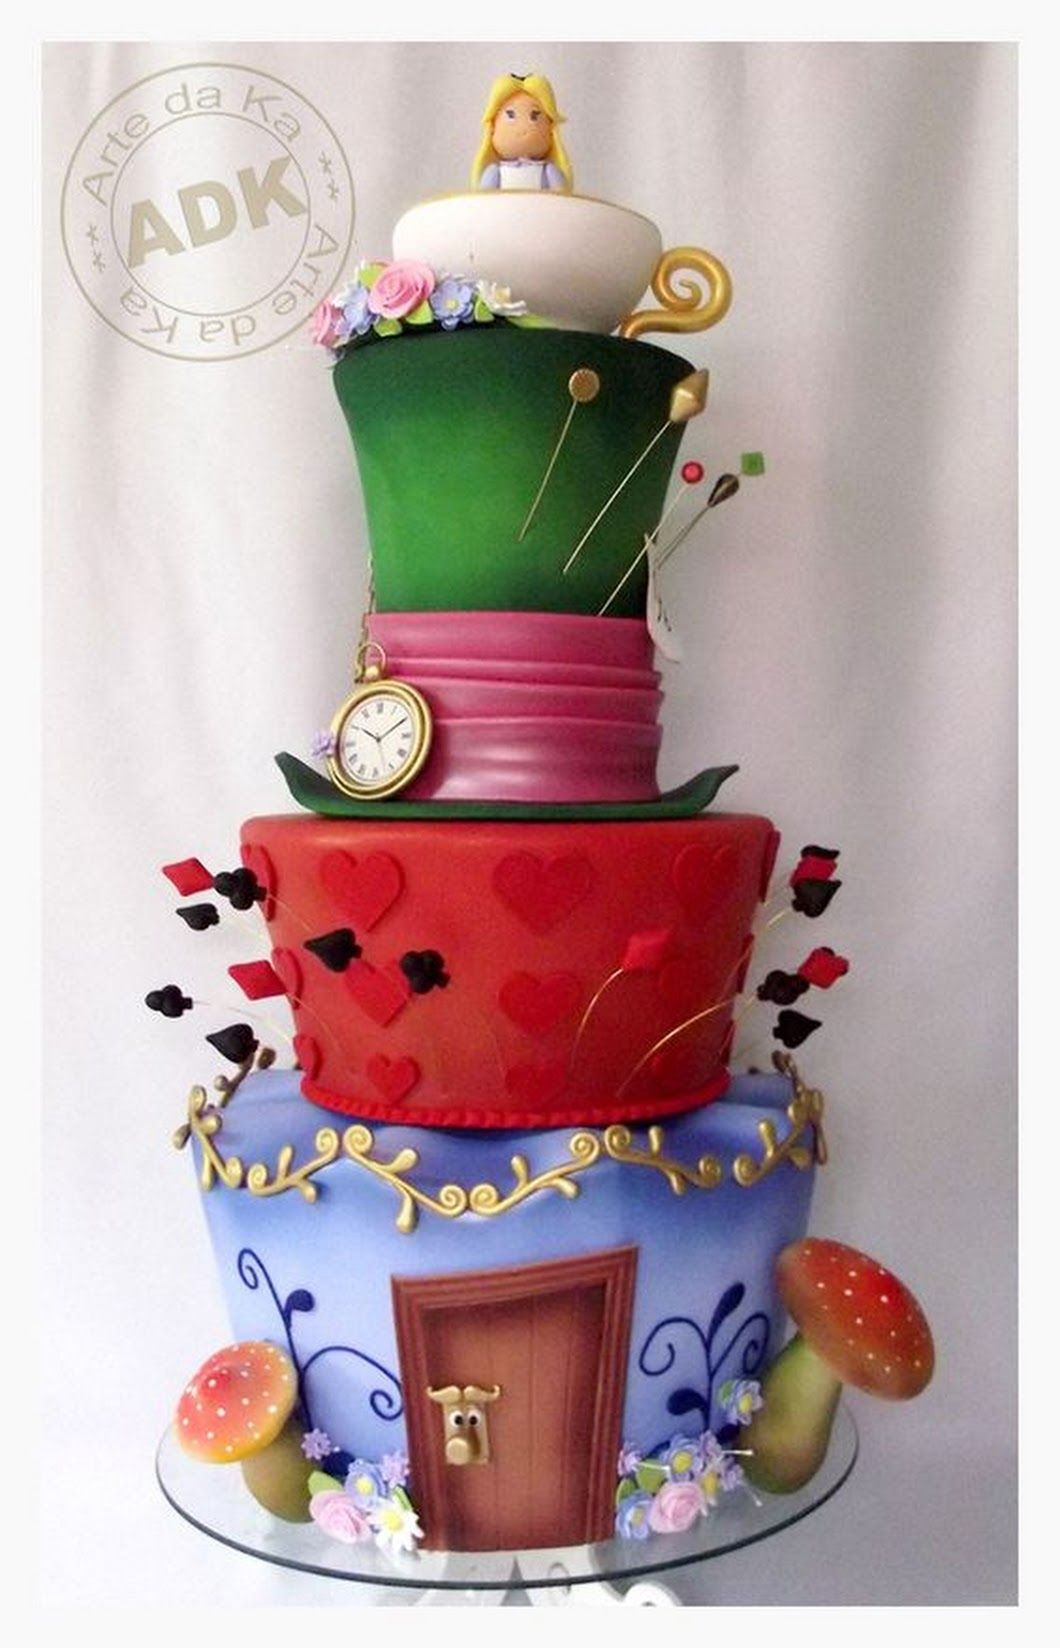 Alice in Wonderland Cake Birthday Ideas | Cake Recipes | Creative Cakes, Home Made, Cake Shops